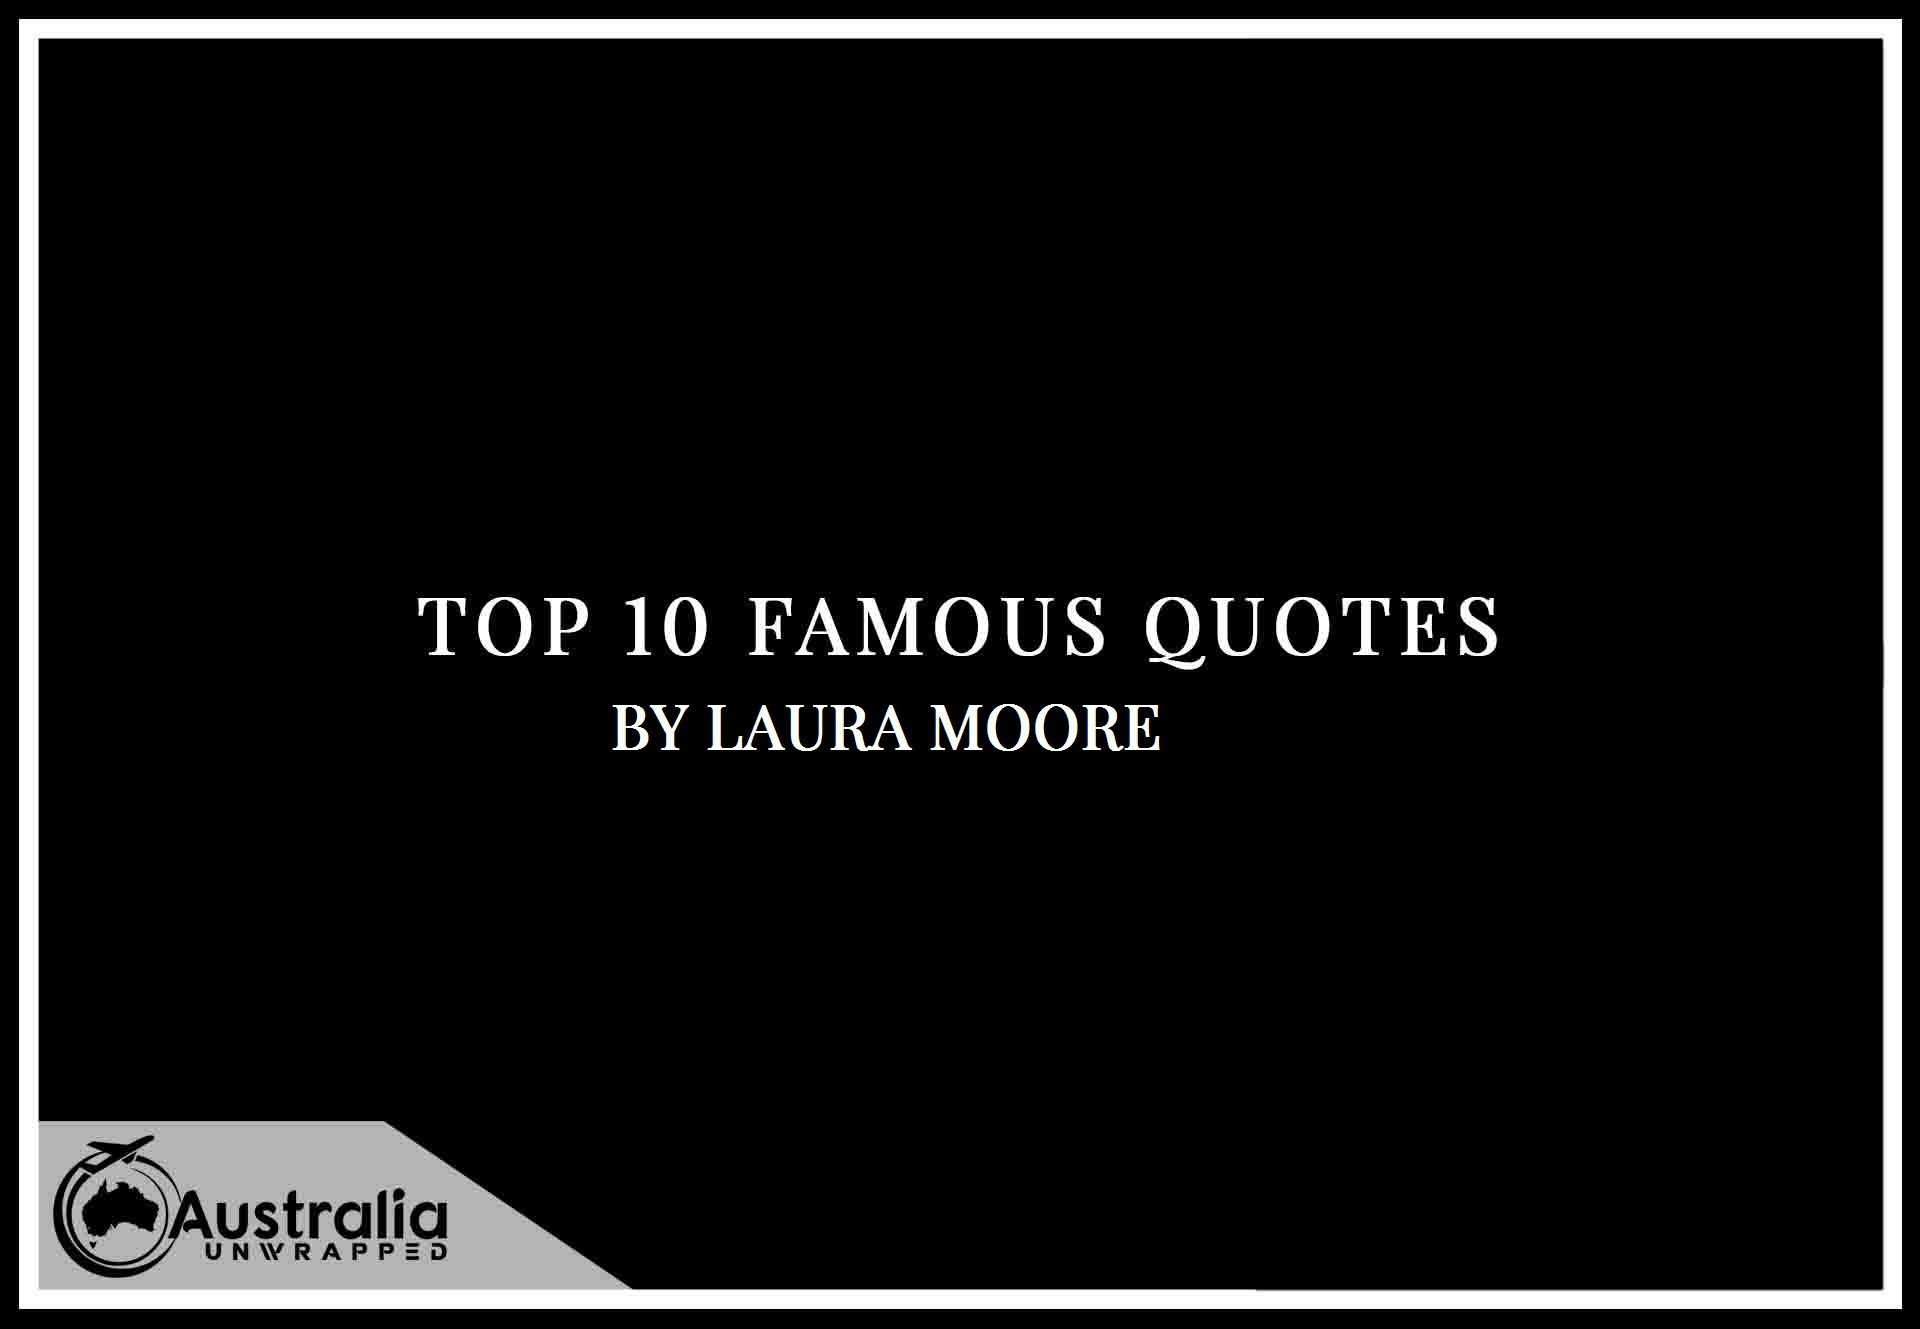 Laura Moore's Top 10 Popular and Famous Quotes